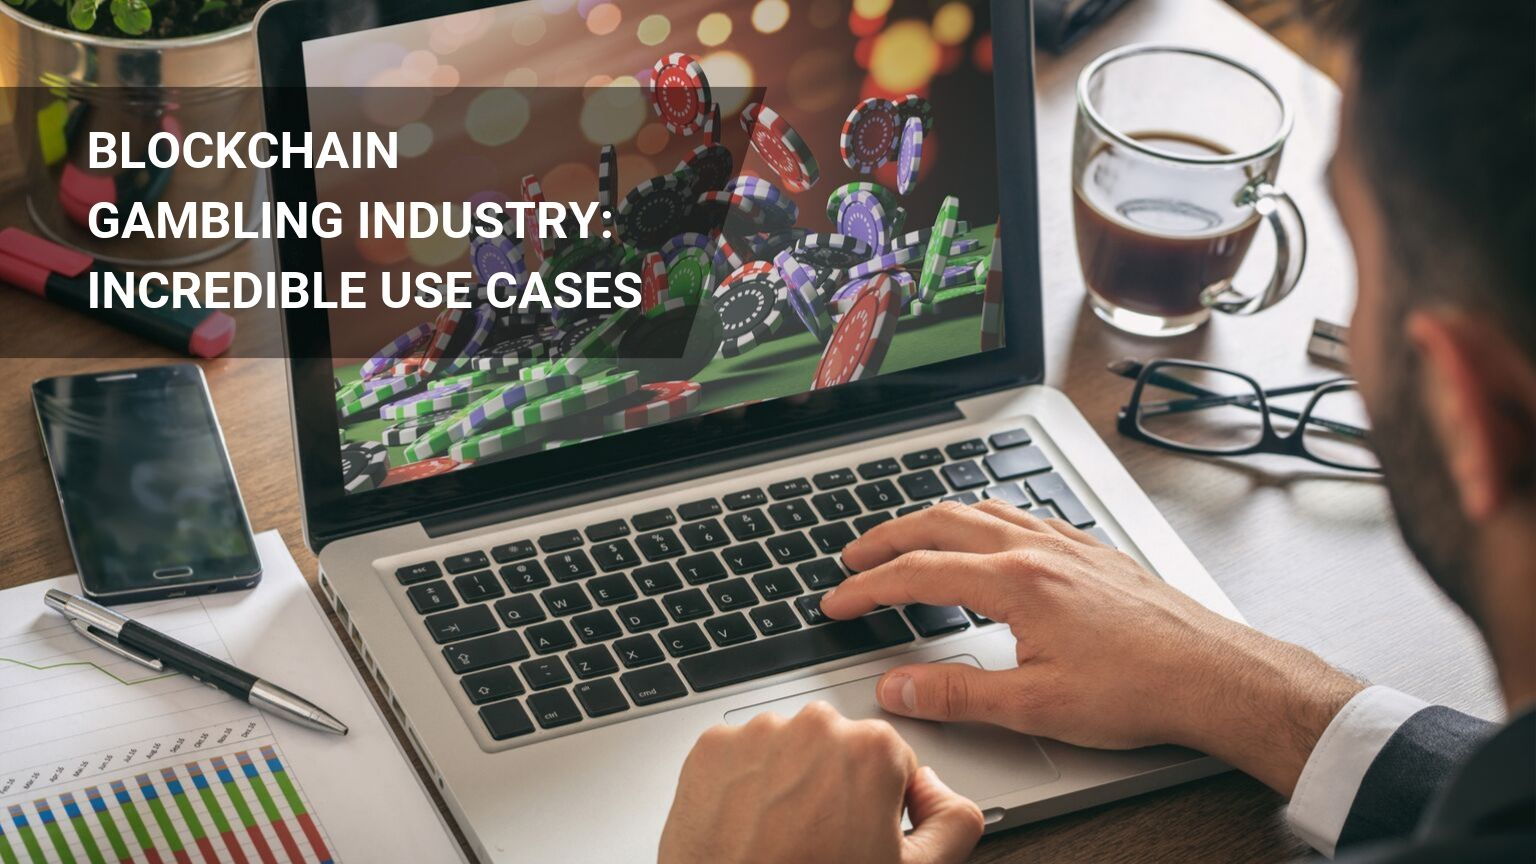 6 Best Blockchain Gambling Industry Use Cases!